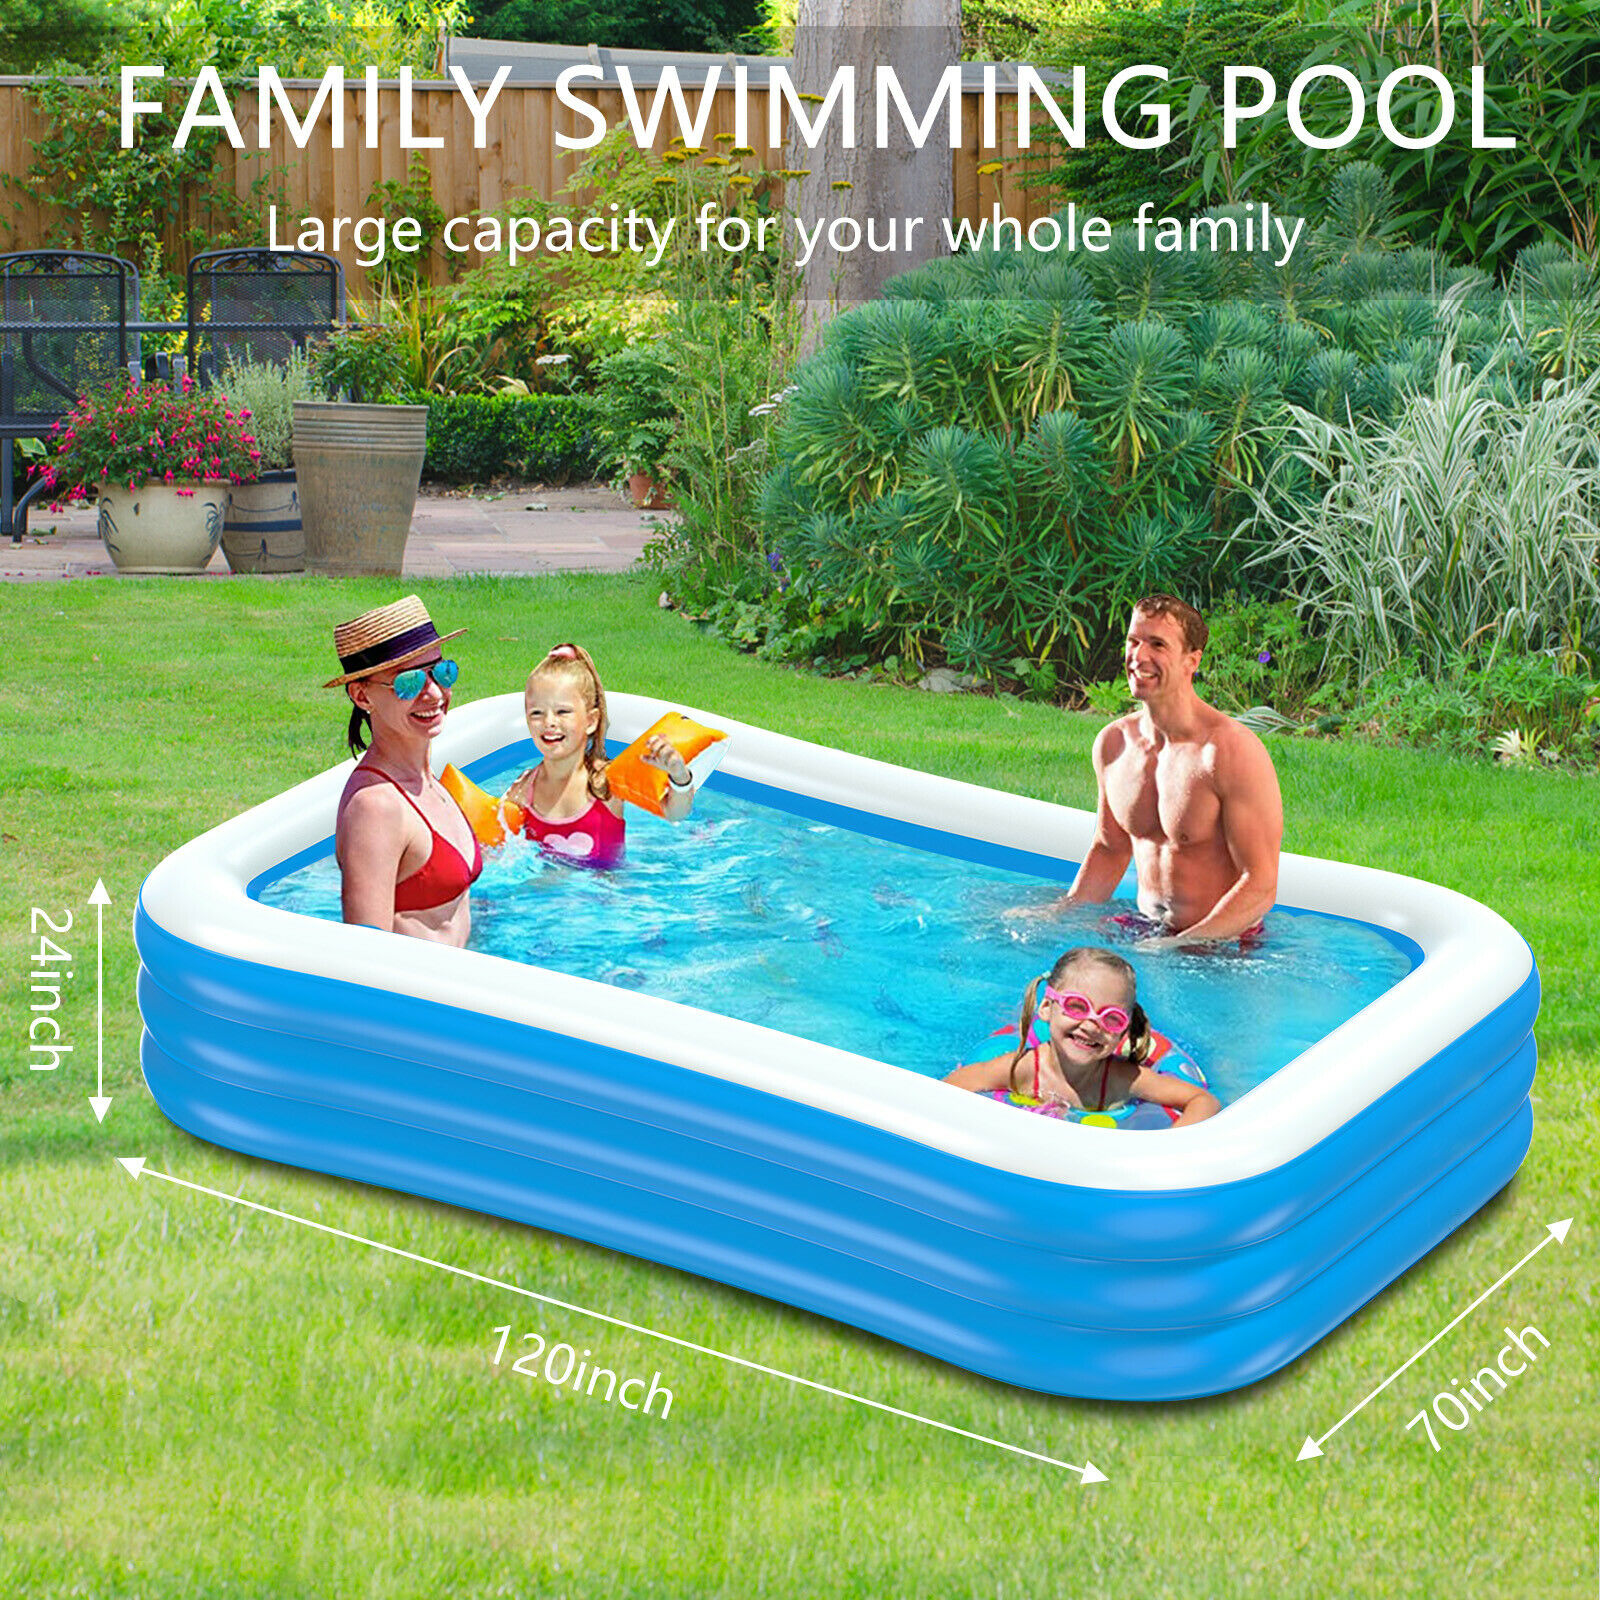 Paddling Pool Inflatable Swimming Pool Kids Adult Family Outdoor Garden Pool UK